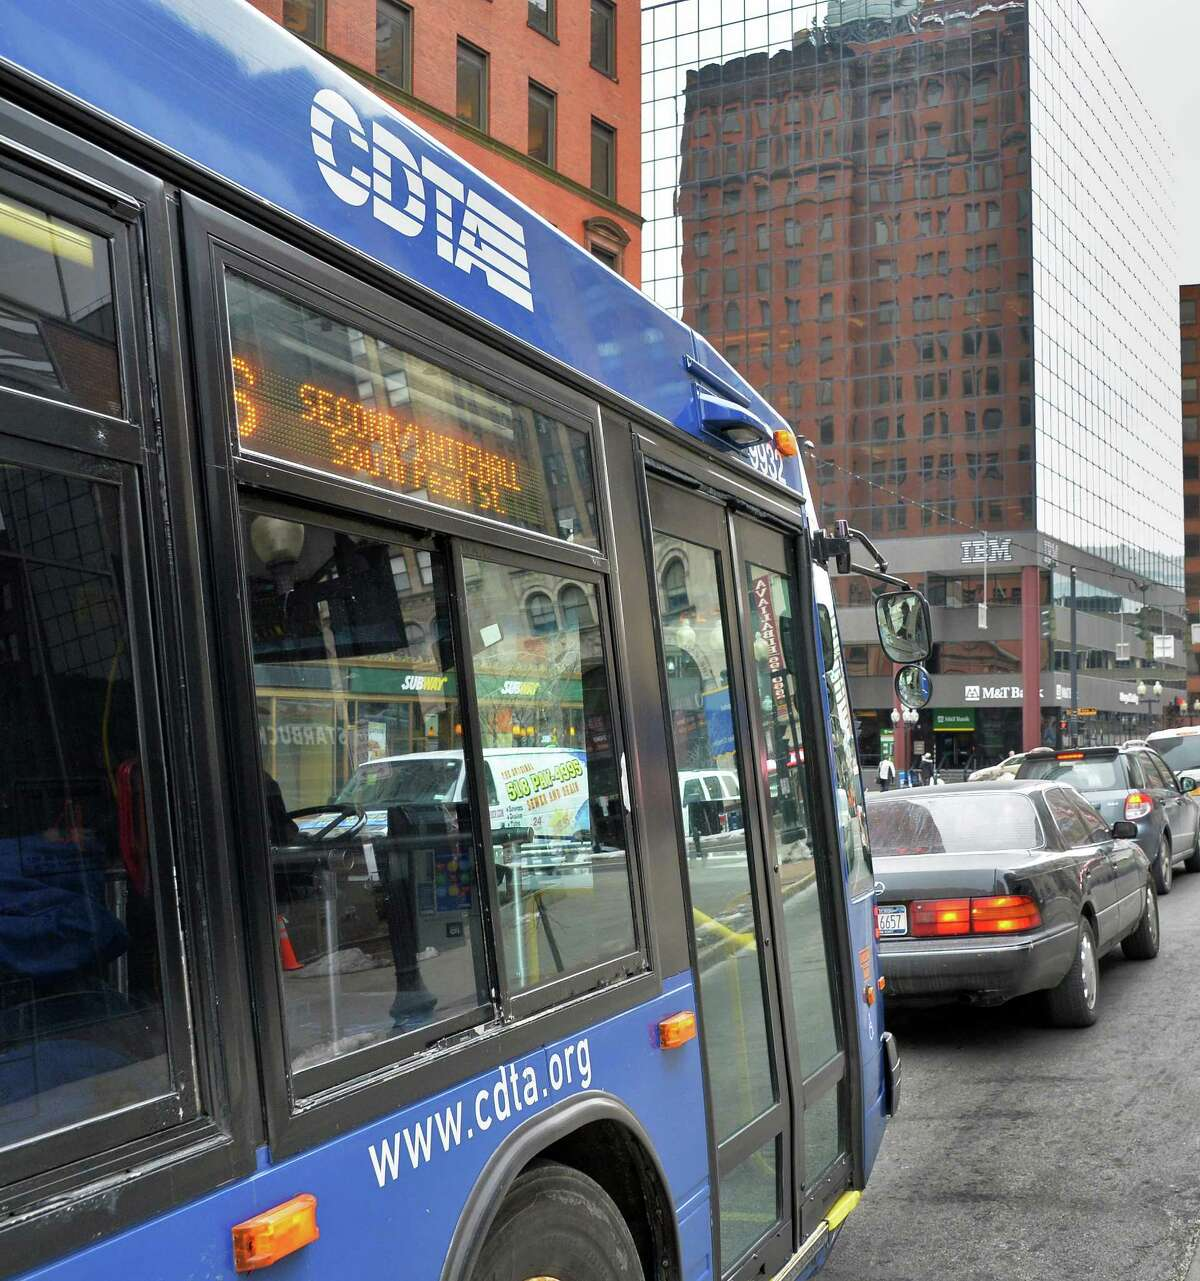 A CDTA bus on North Pearl Street Wednesday March 5, 2014, in Albany, NY. (John Carl D'Annibale / Times Union)